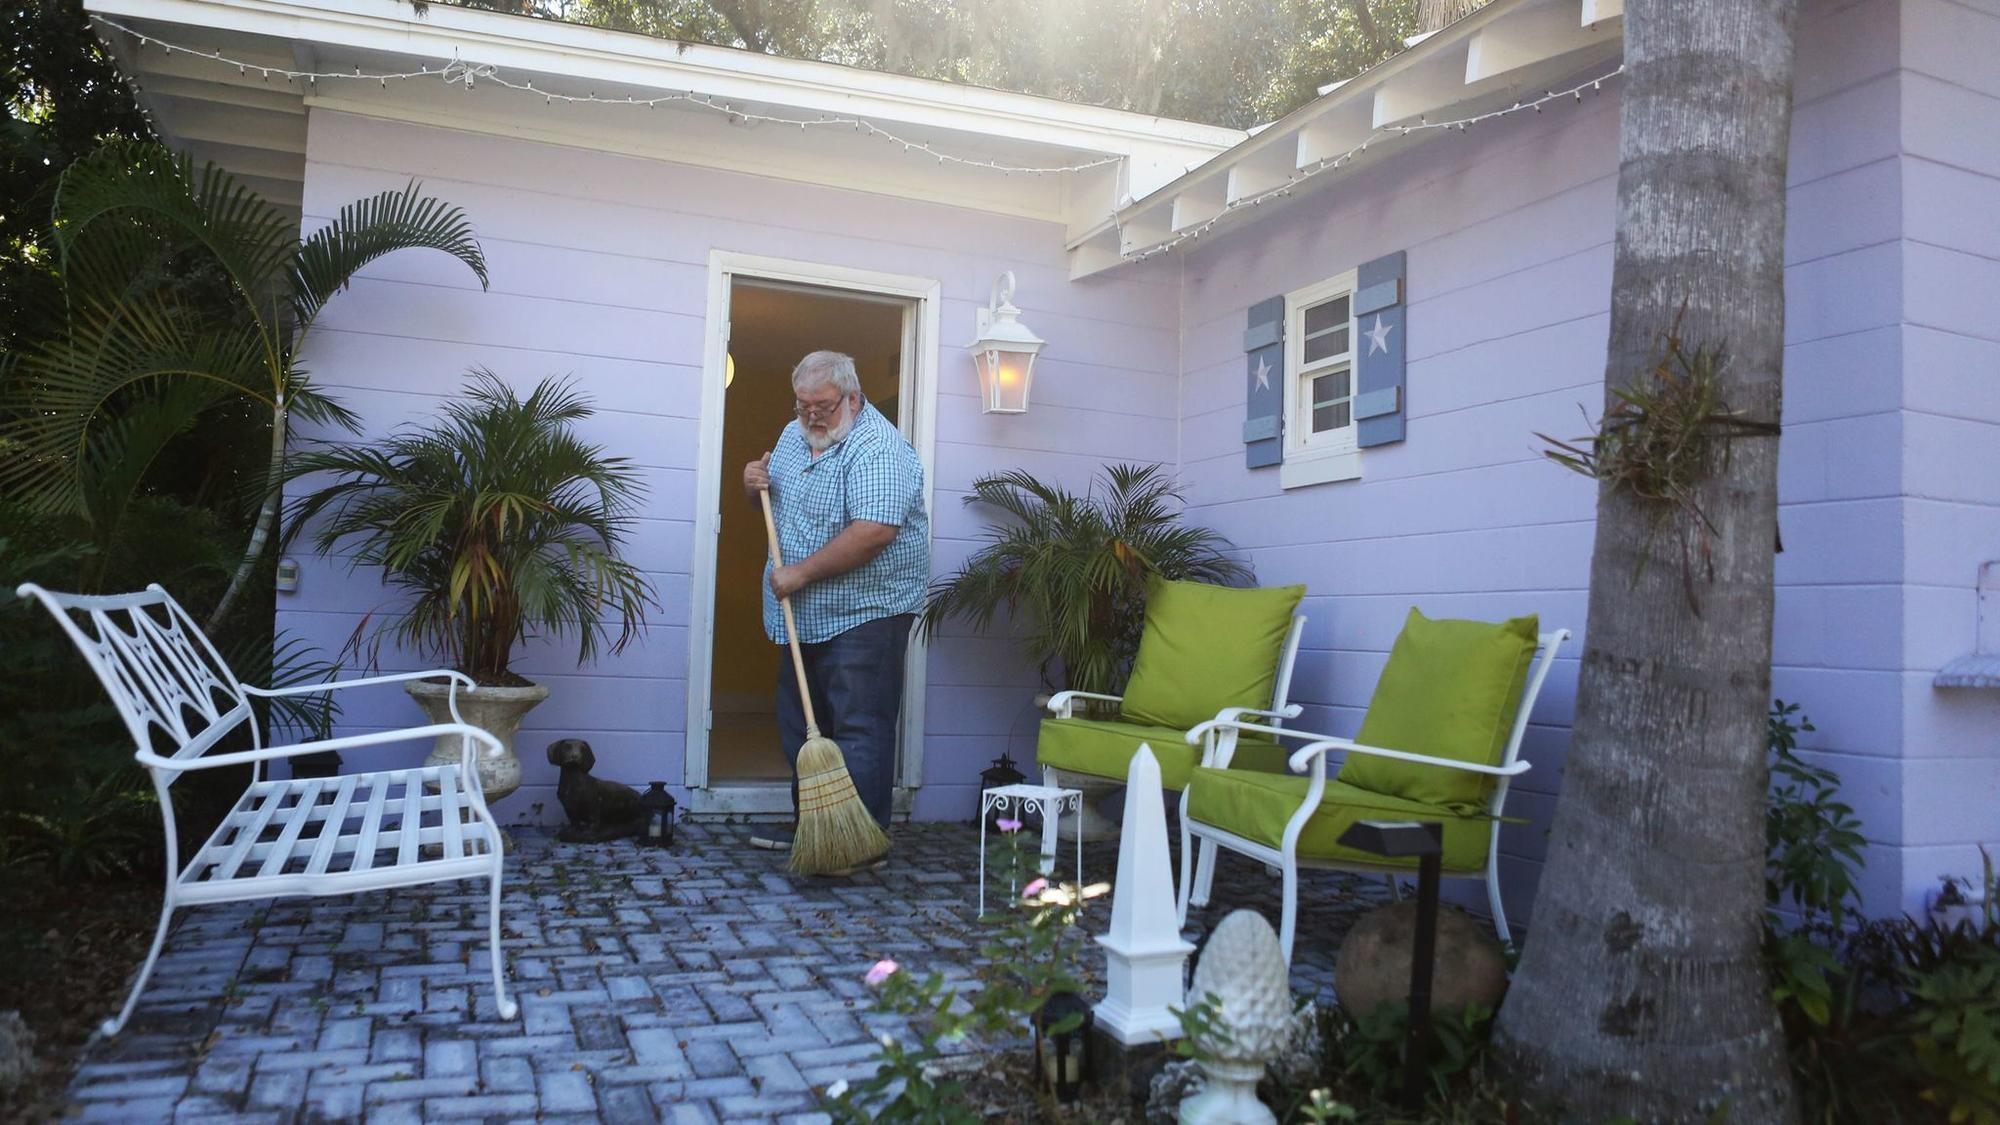 Orlando Could Require Home Sharers To Be At Home Orlando Sentinel